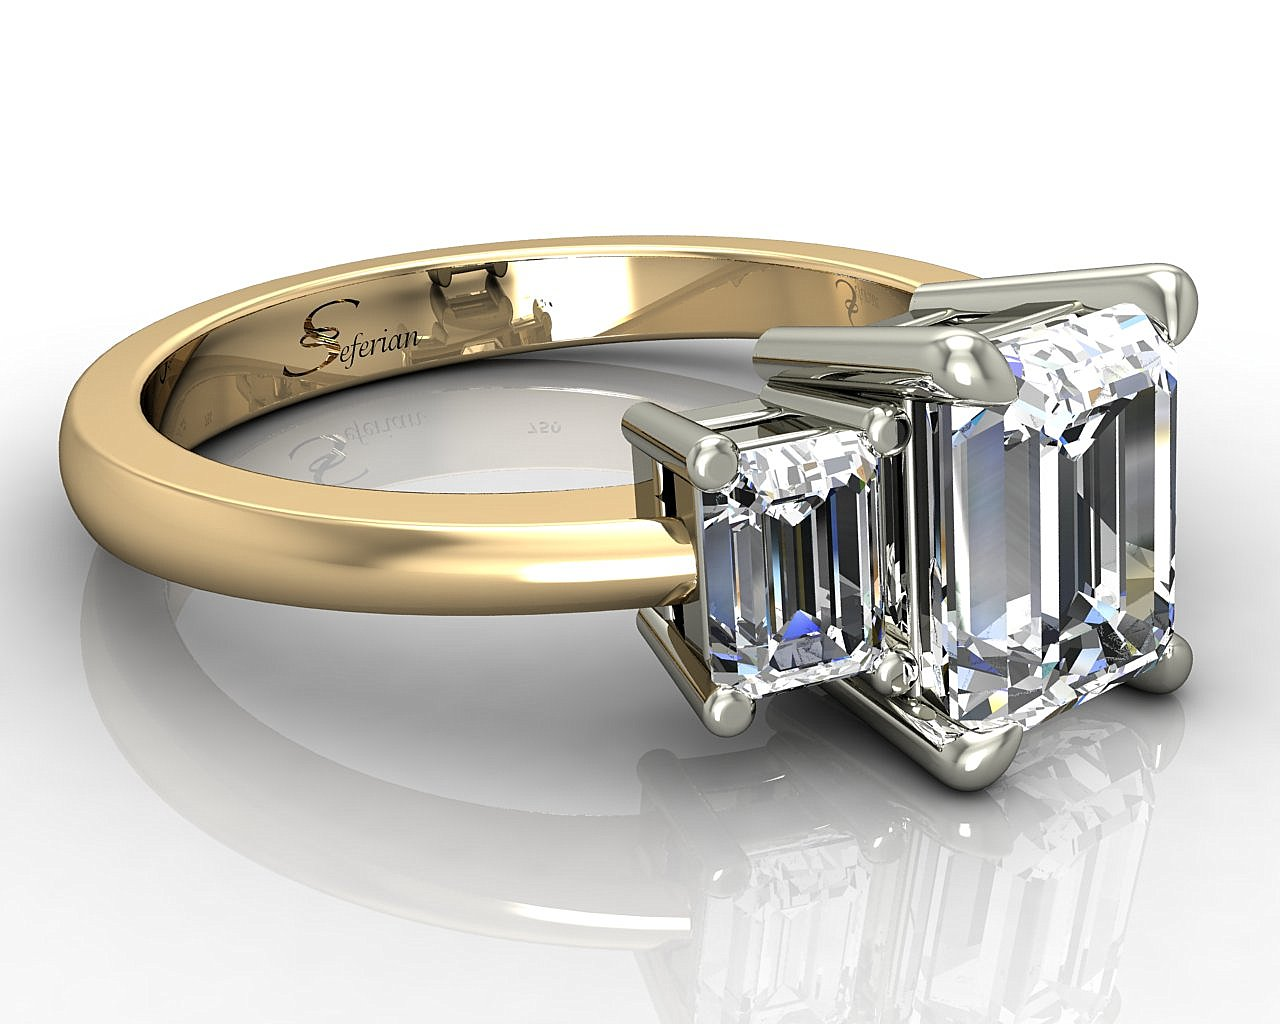 Ring Design Ideas male ring design ideas screenshot Wedding Ring Designs Engagement Ring Designs Diamond Ring Designs